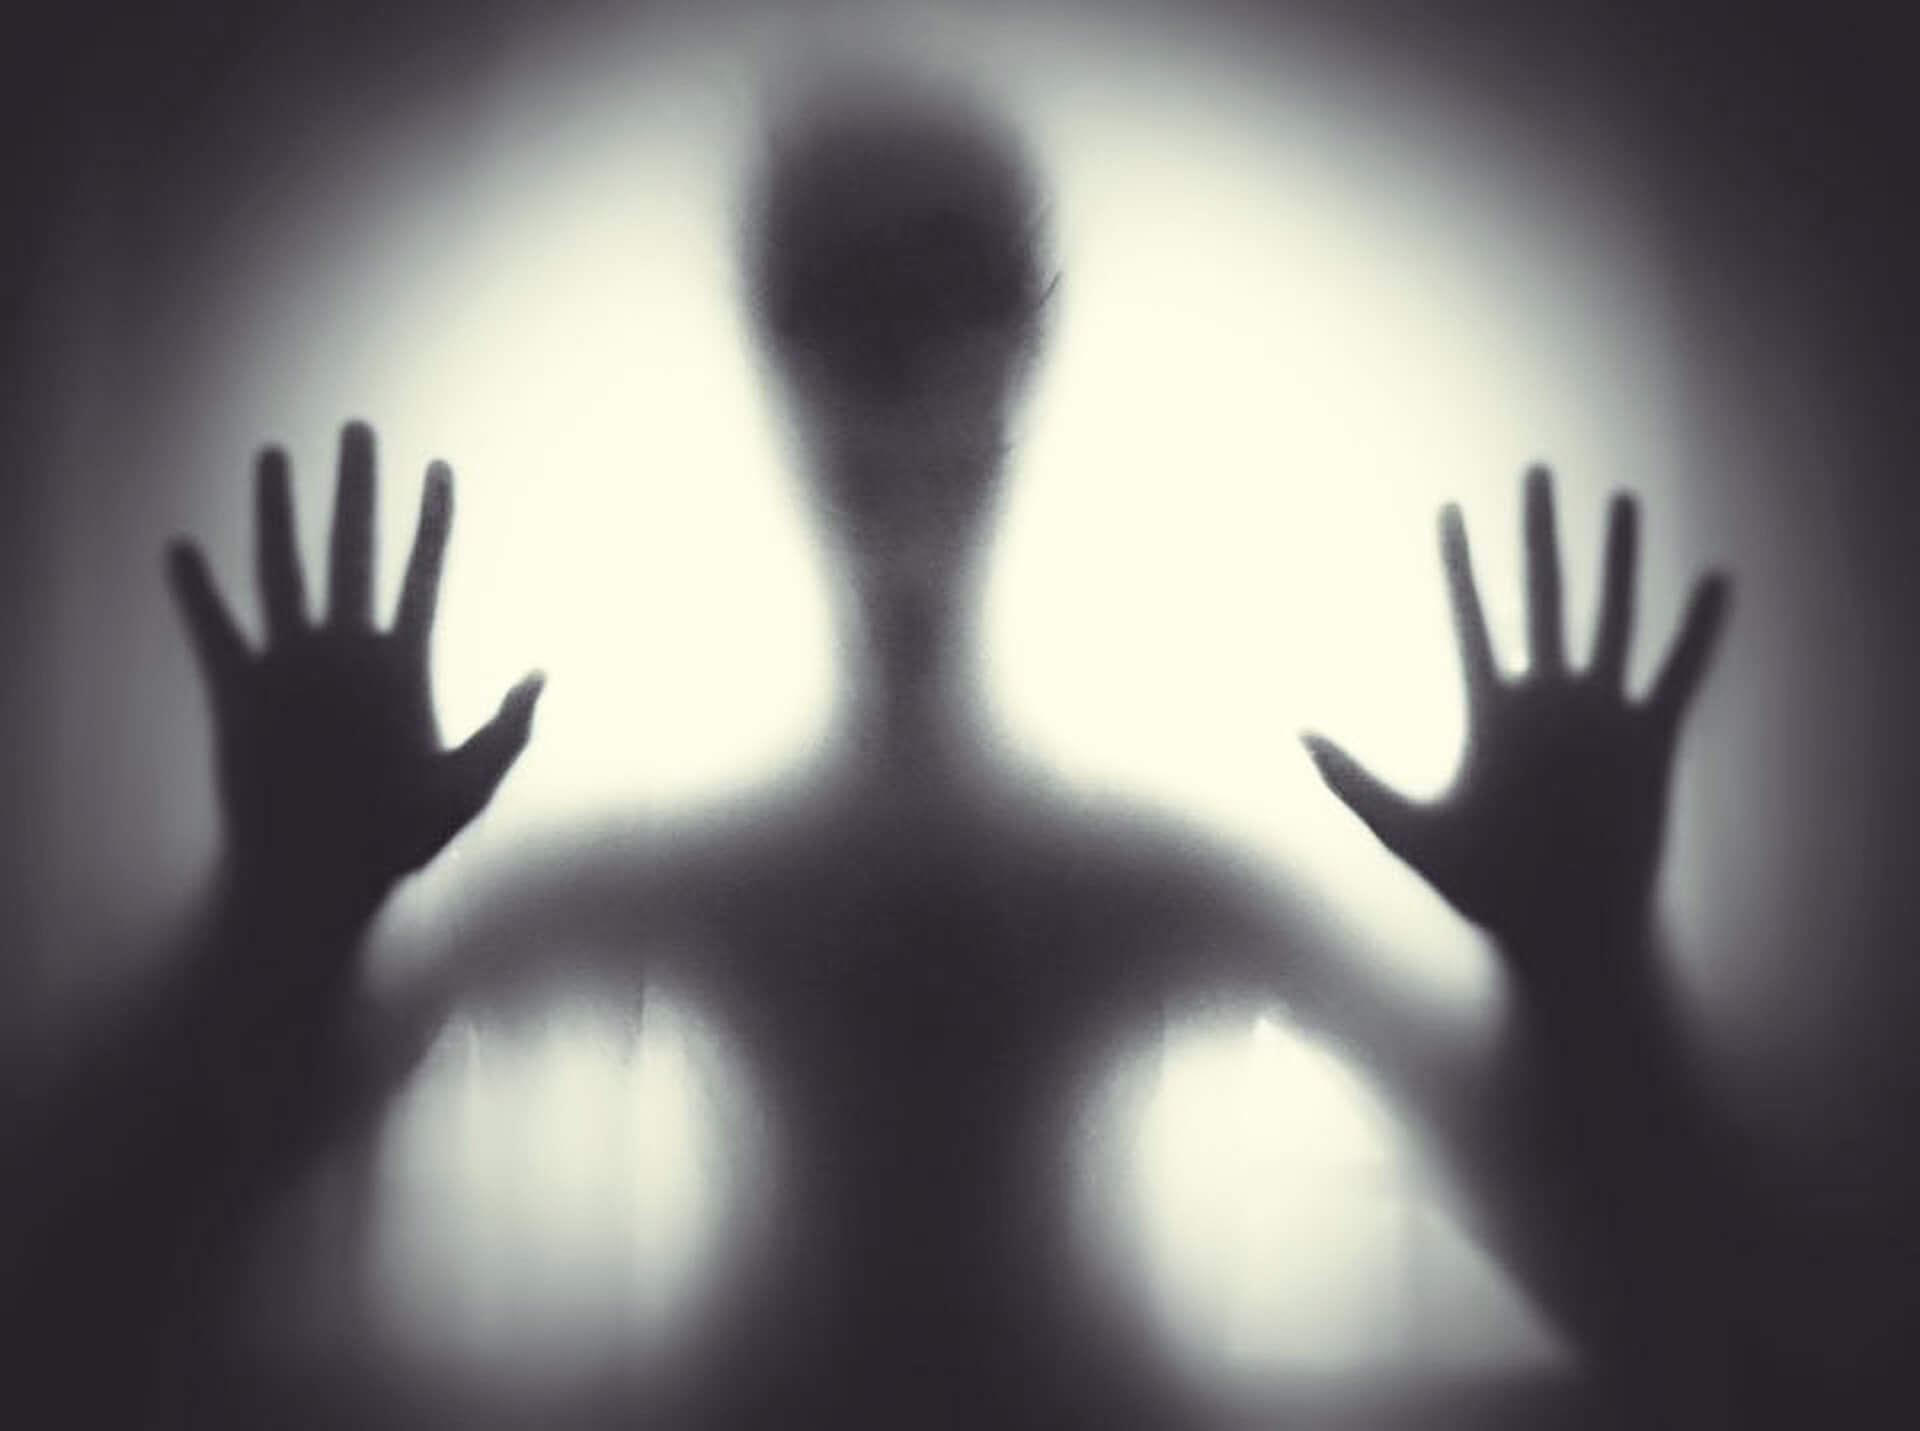 ghostly alien silhouette seen through glass